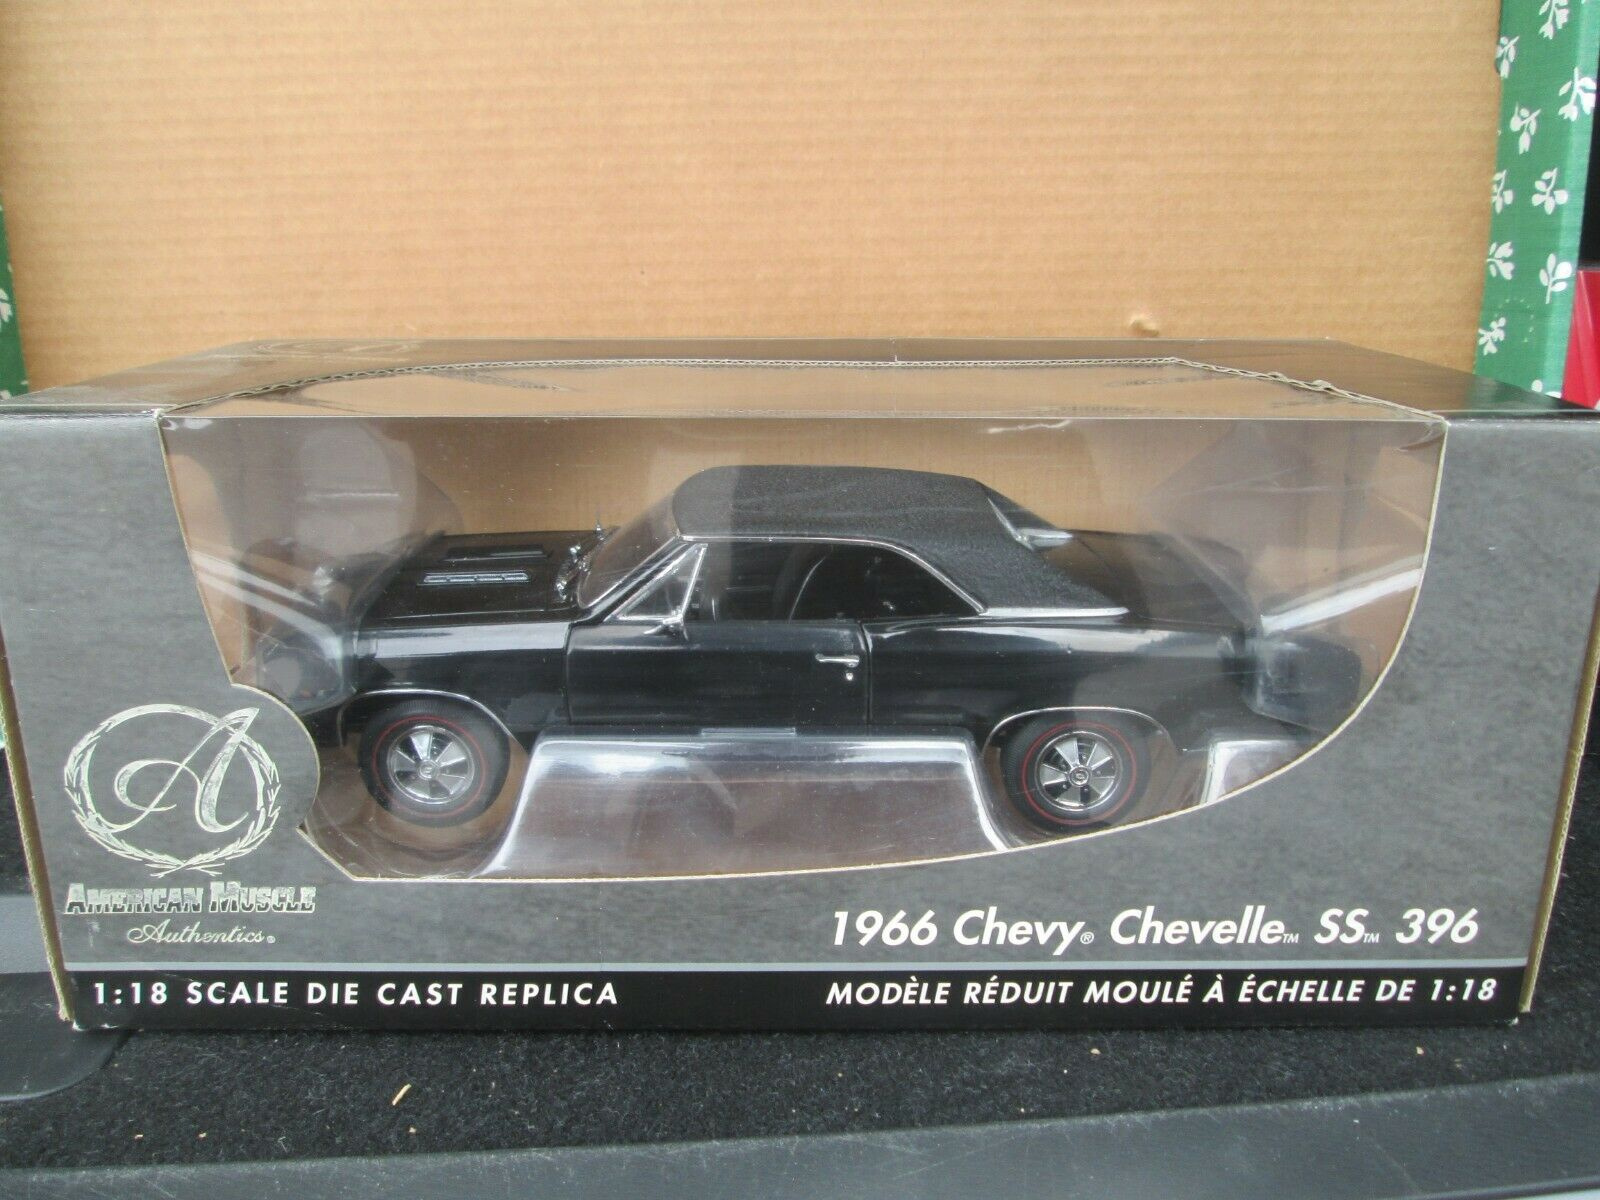 Ertl Authentics 1966 Chevy Chevelle SS 396 Limited Edition 1 18 Diecast In Box - $20.50